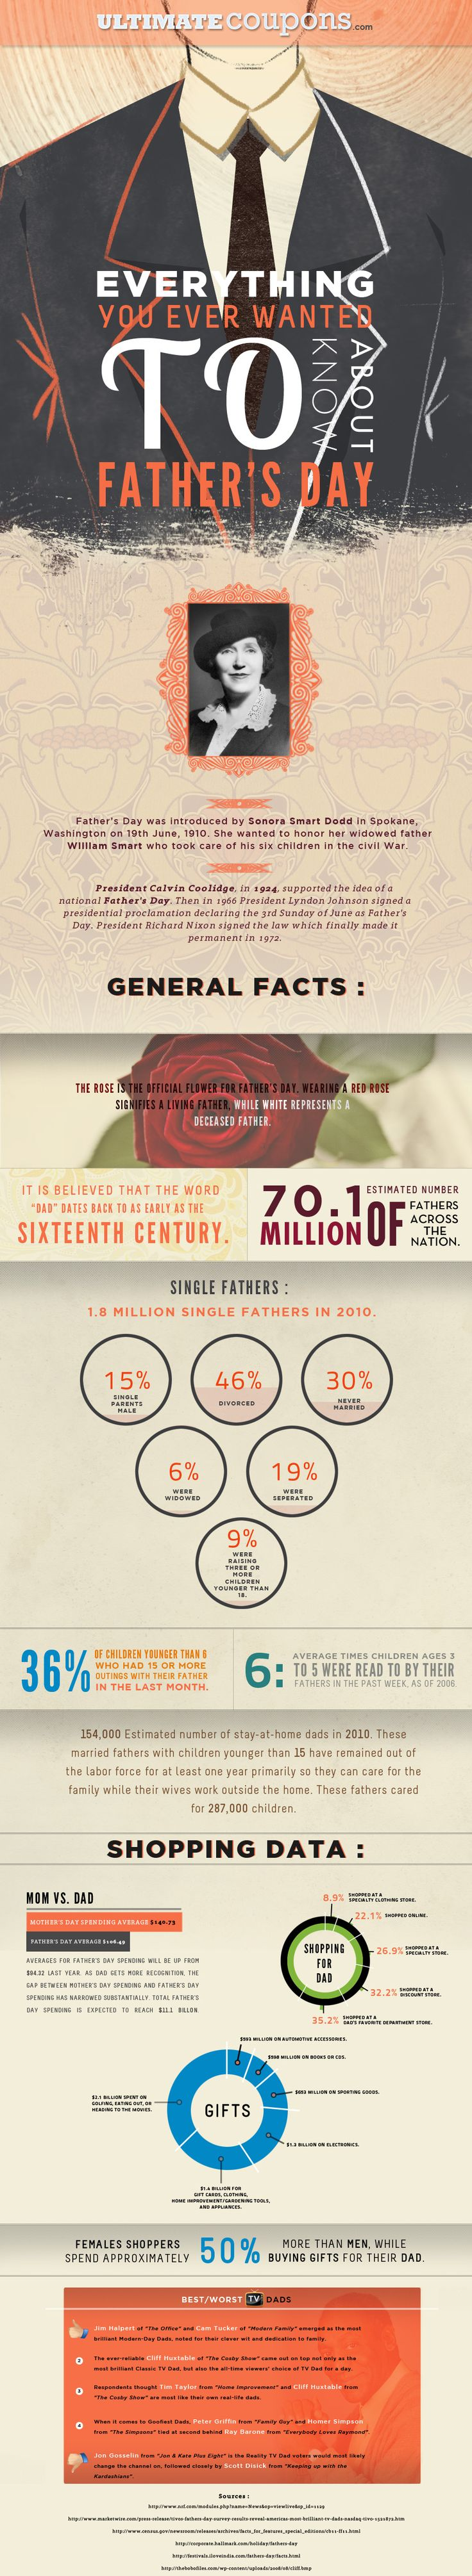 Gorgeous & interesting infographic about Father's Day and fatherhood in general...